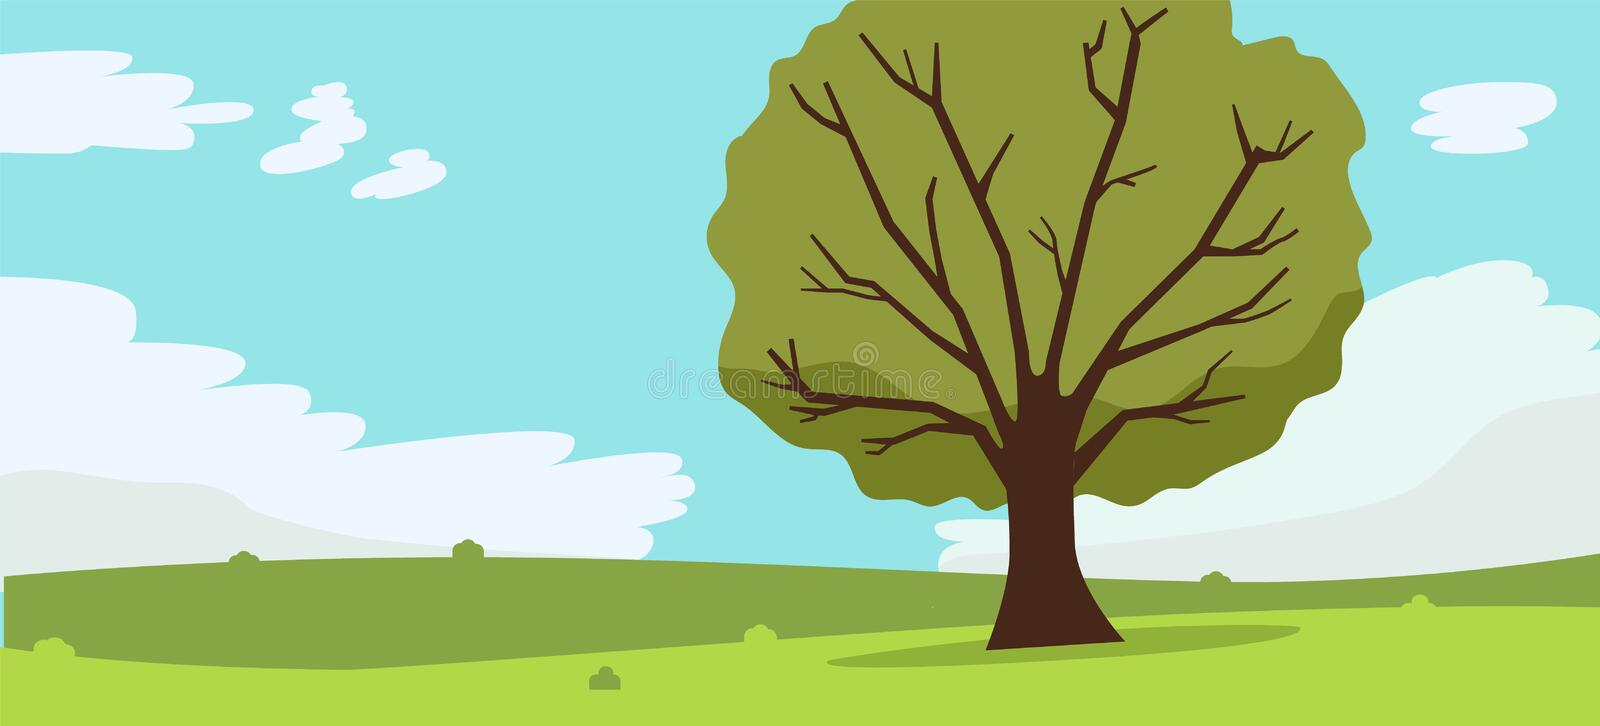 Nature landscape with tree , clouds and sky background.Vector illustration.Mountains Hills Green Grass and big tree. royalty free illustration